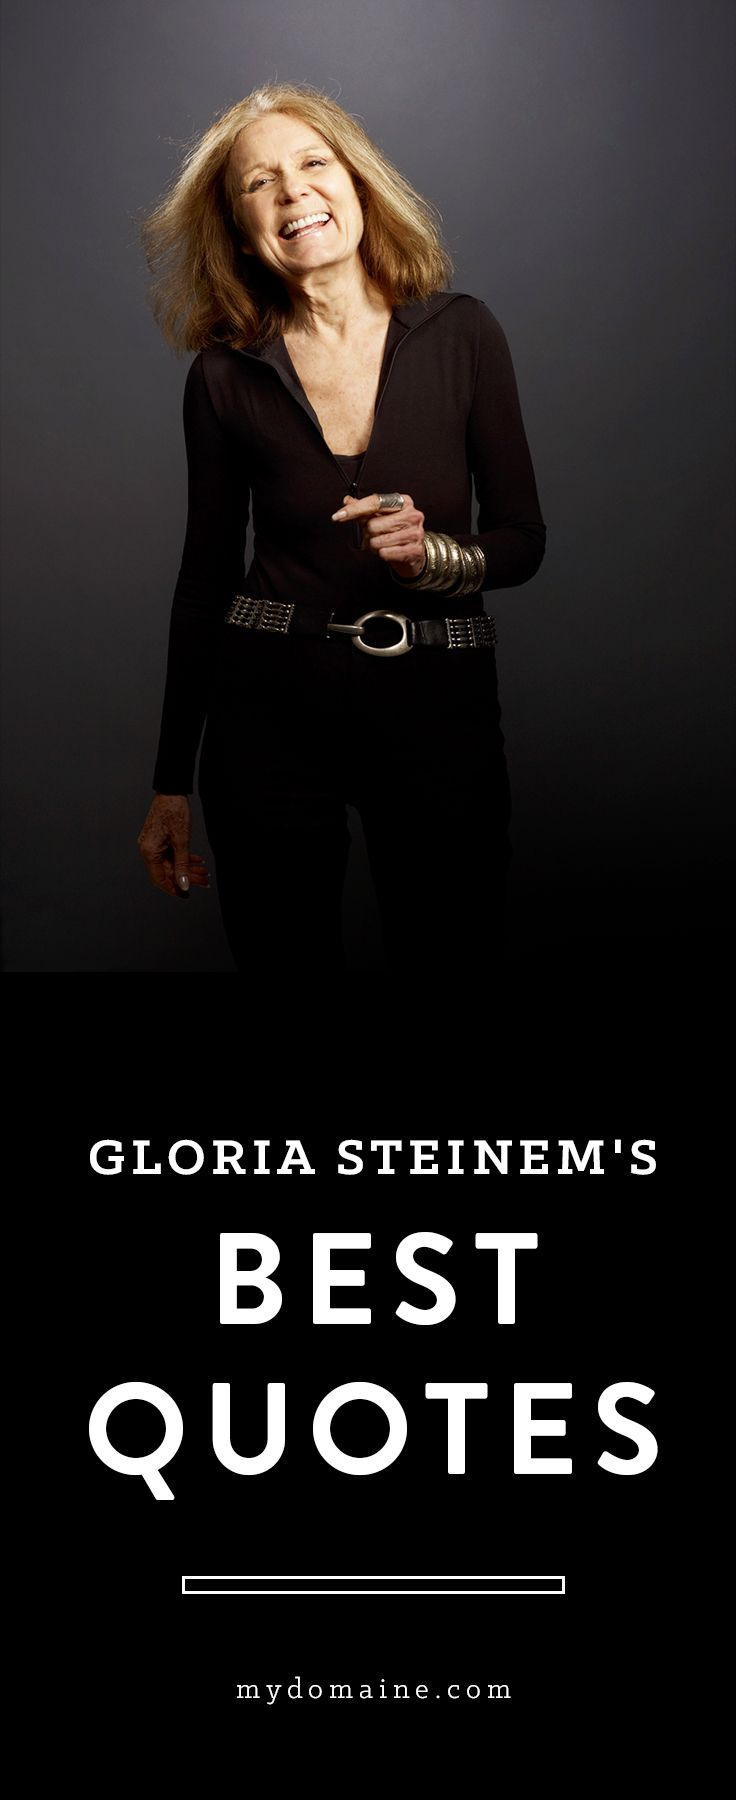 Need a little pick-me-up? Every woman should hear and know Gloria Steinem.